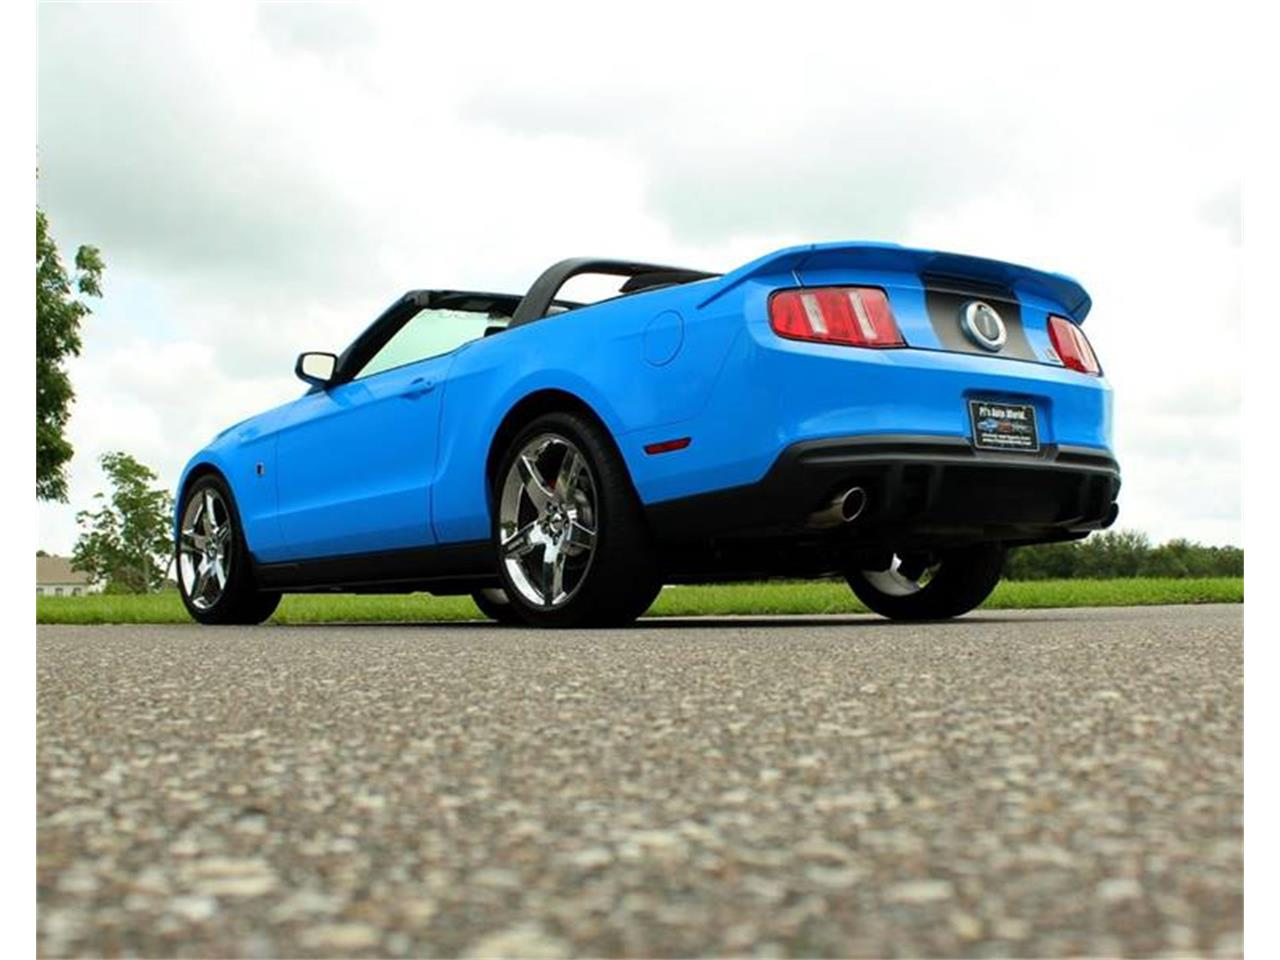 2010 Ford Mustang (CC-1228679) for sale in Clearwater, Florida